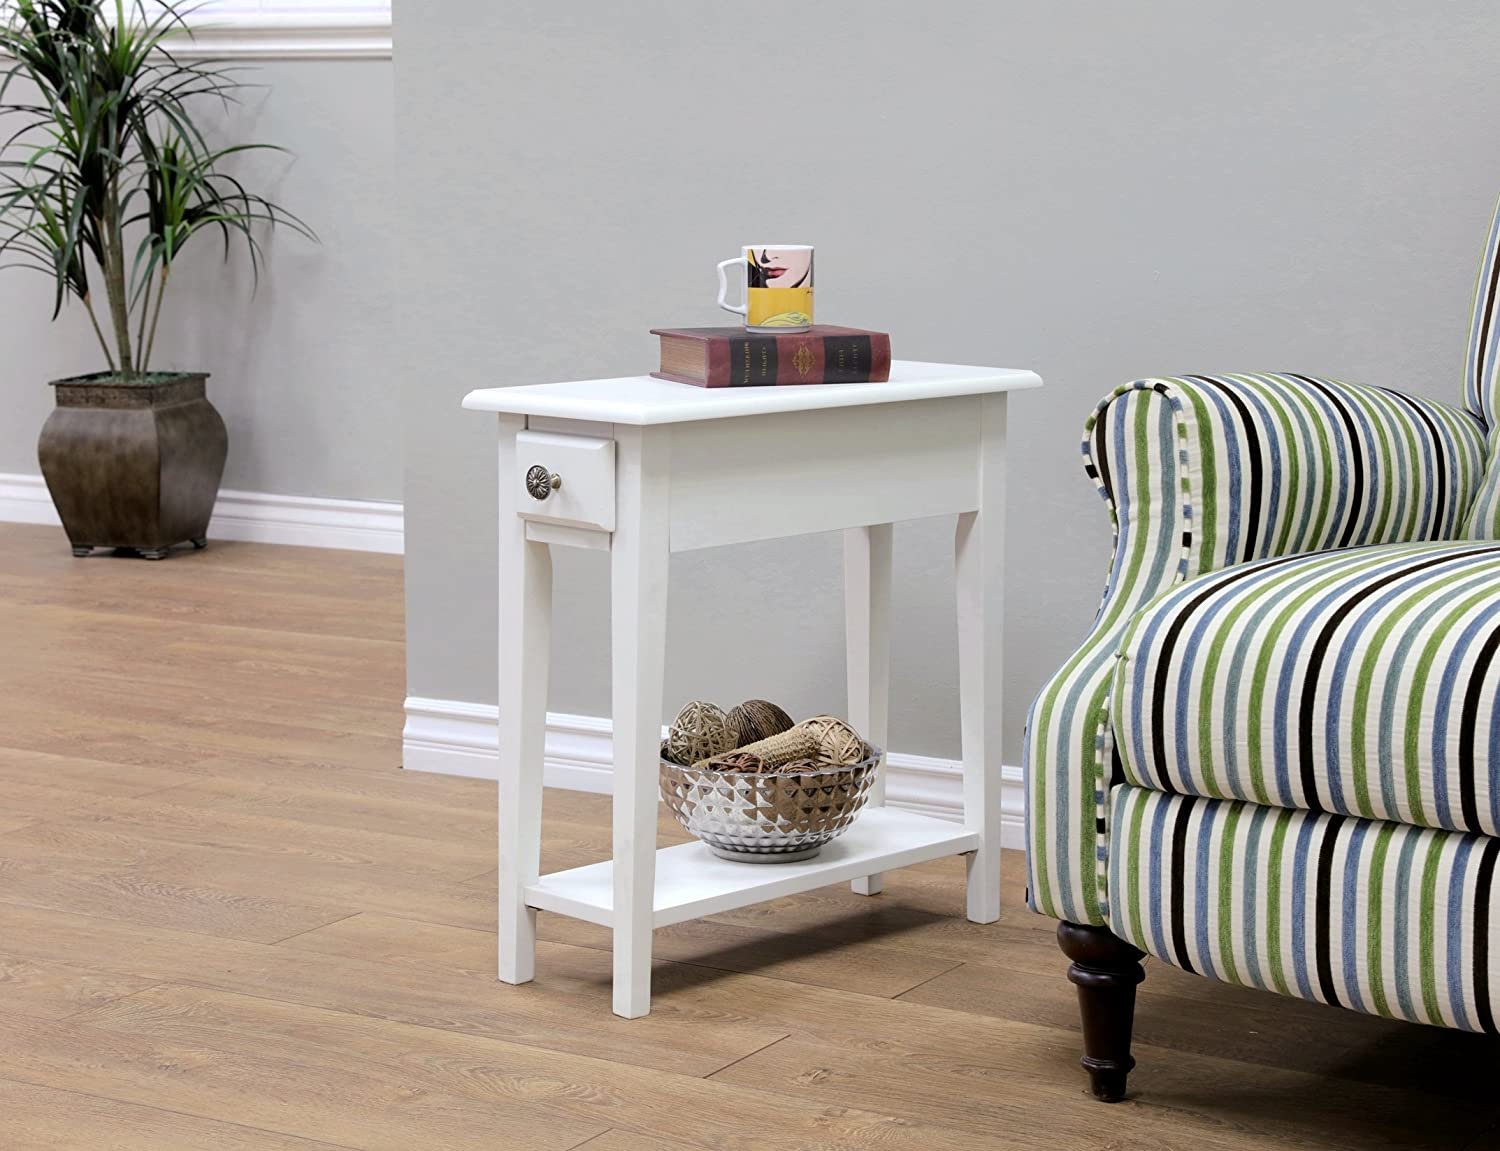 Frenchi Home Furnishing Chair Side Table with Storage, Queen, White Frenchi Furniture WH321